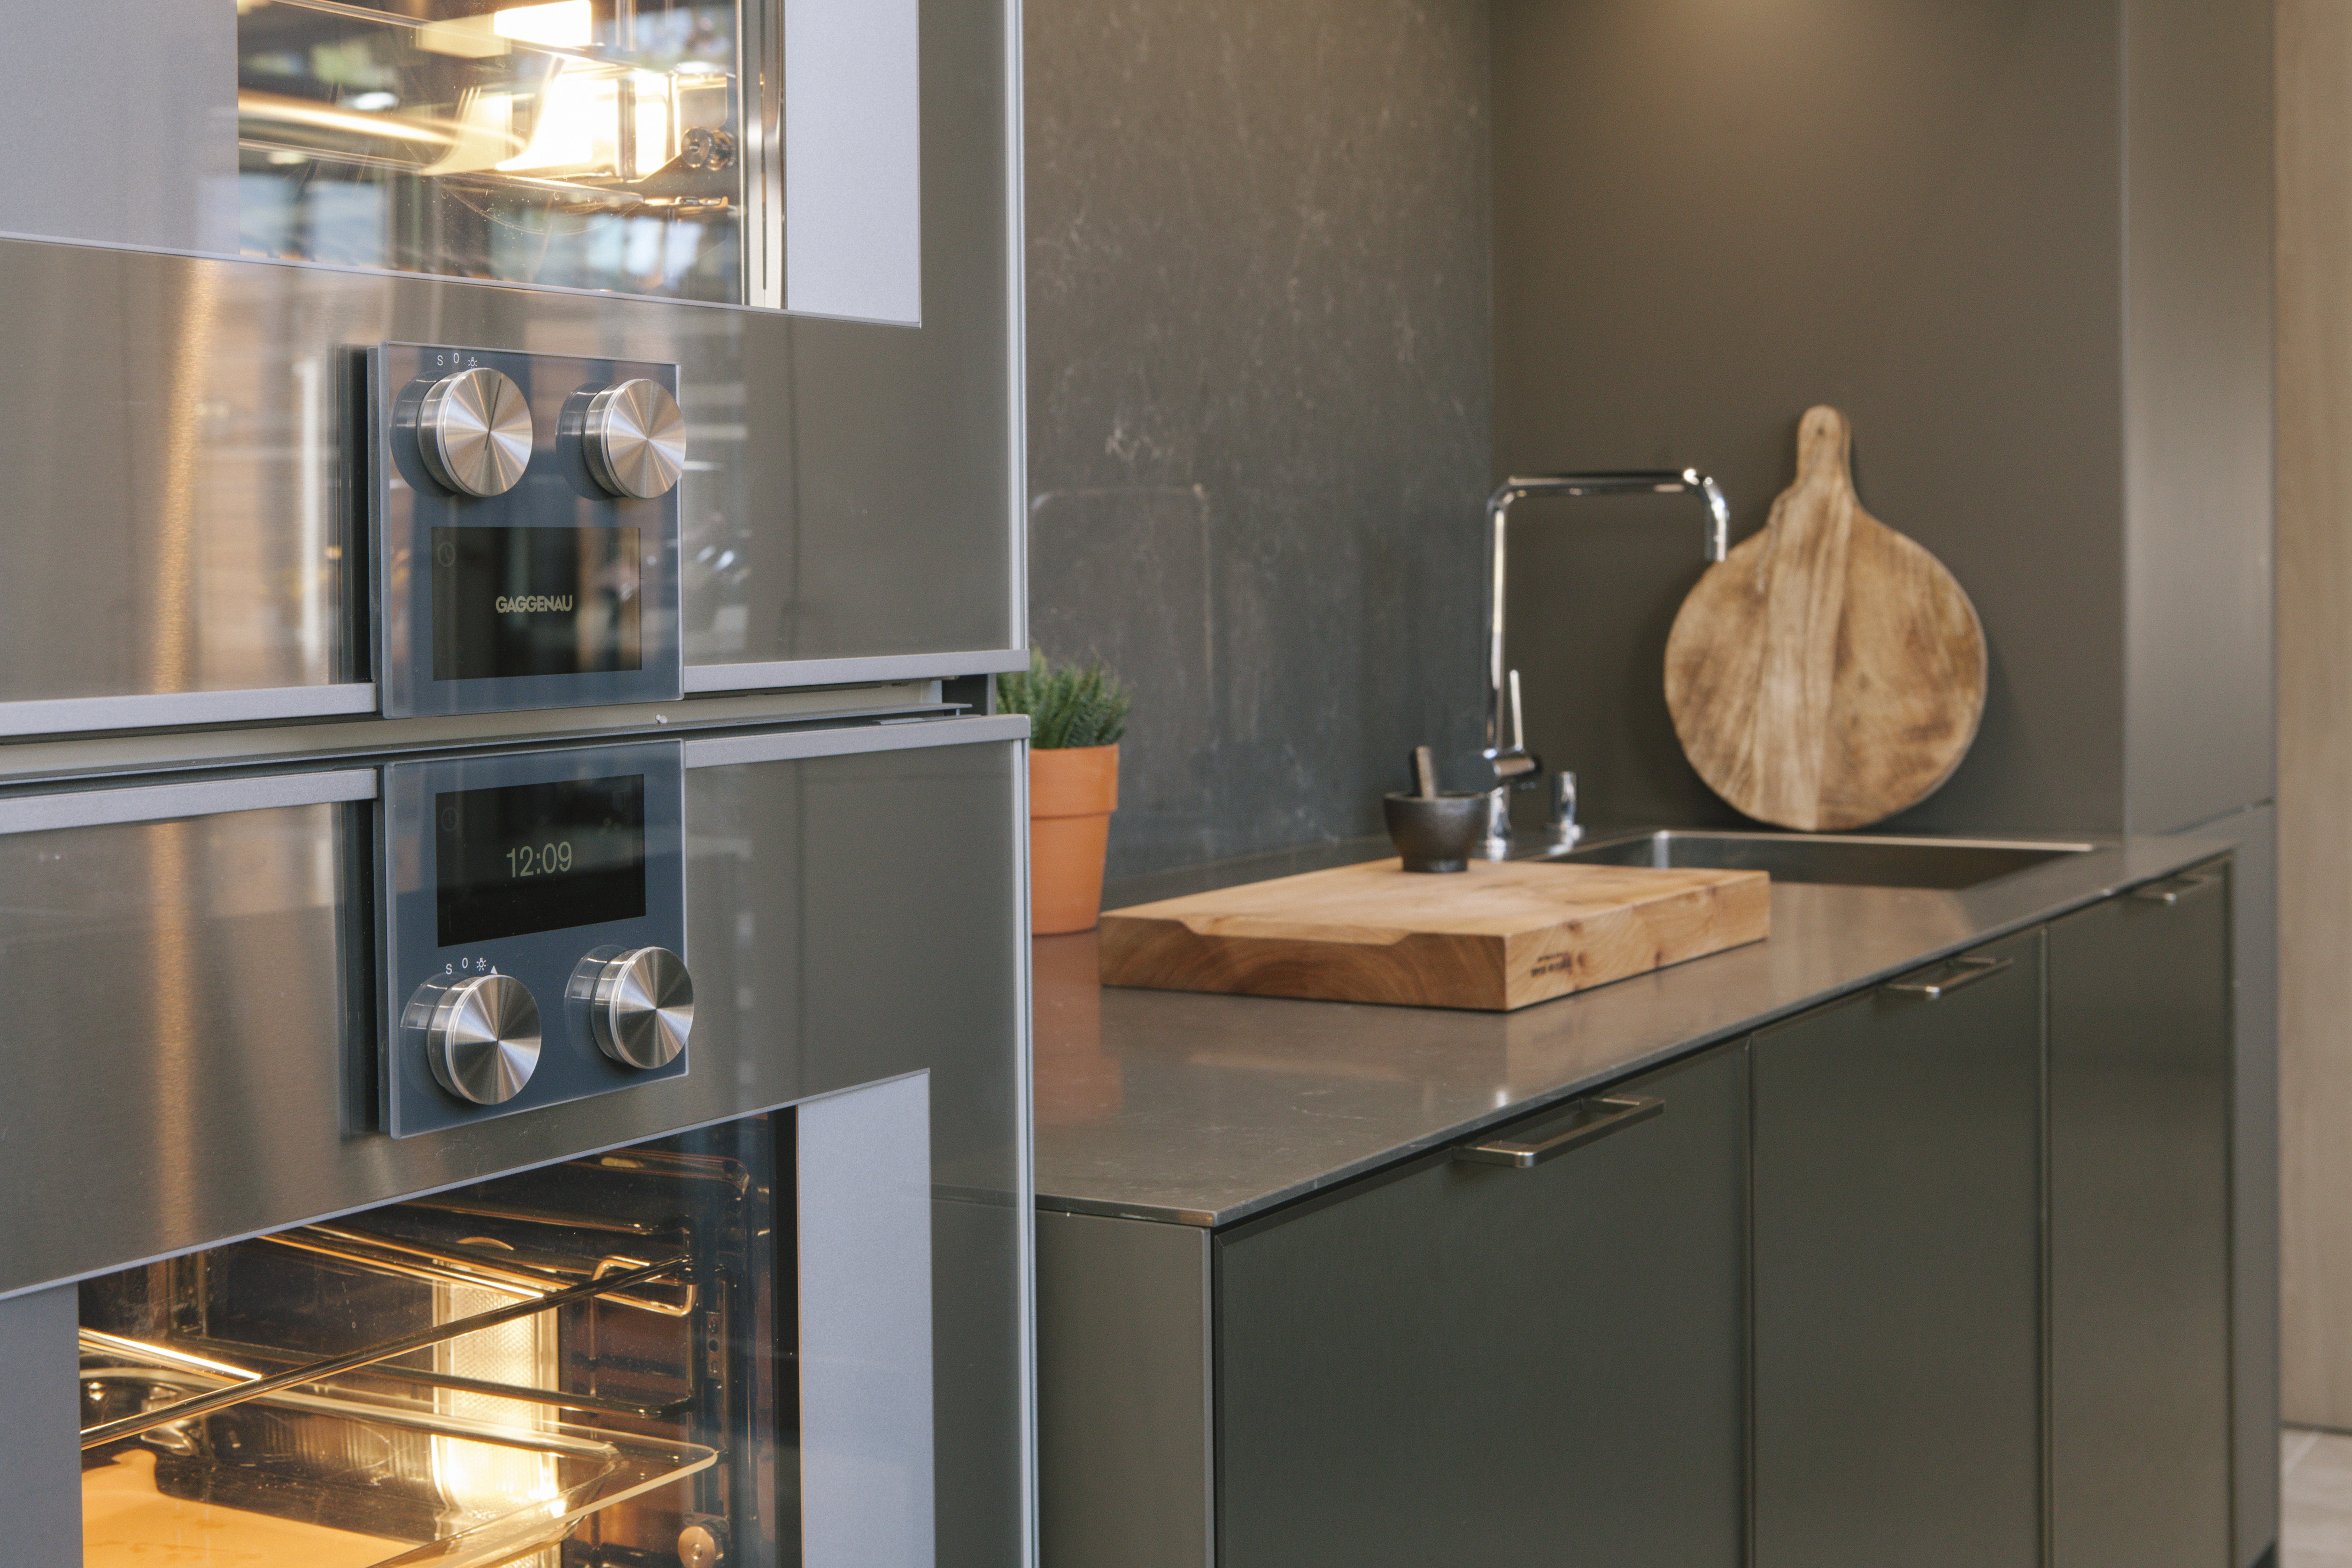 A luxury kitchen from SieMatic with Gaggenau appliances